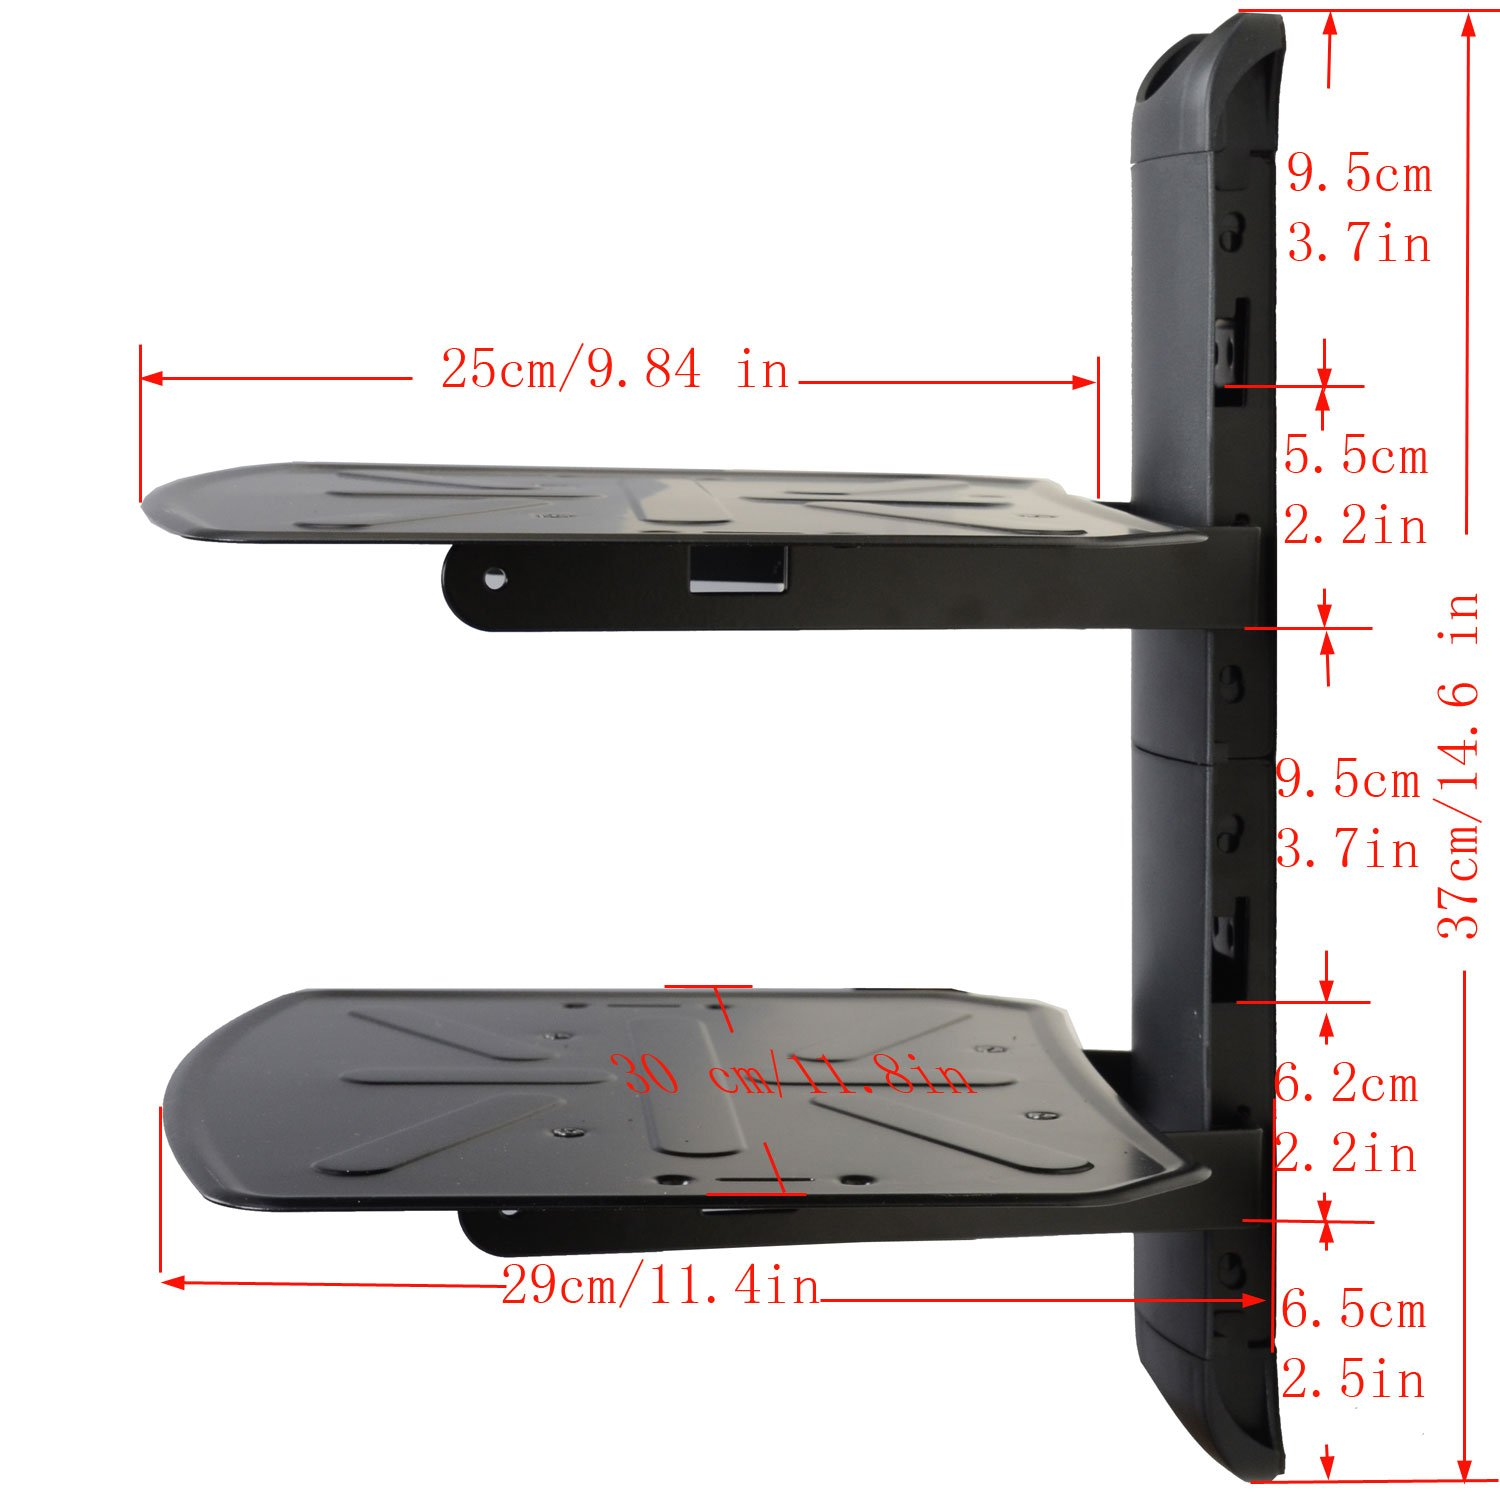 Amazon.com: VideoSecu 2 Shelf Component Wall Mount Bracket for DVD/DVR/VCR/CABLE  BOX/DDS BOX /Blu-Ray/Game Station/ Receiver MDVD04B WP6: Home Audio & ... - Amazon.com: VideoSecu 2 Shelf Component Wall Mount Bracket For DVD